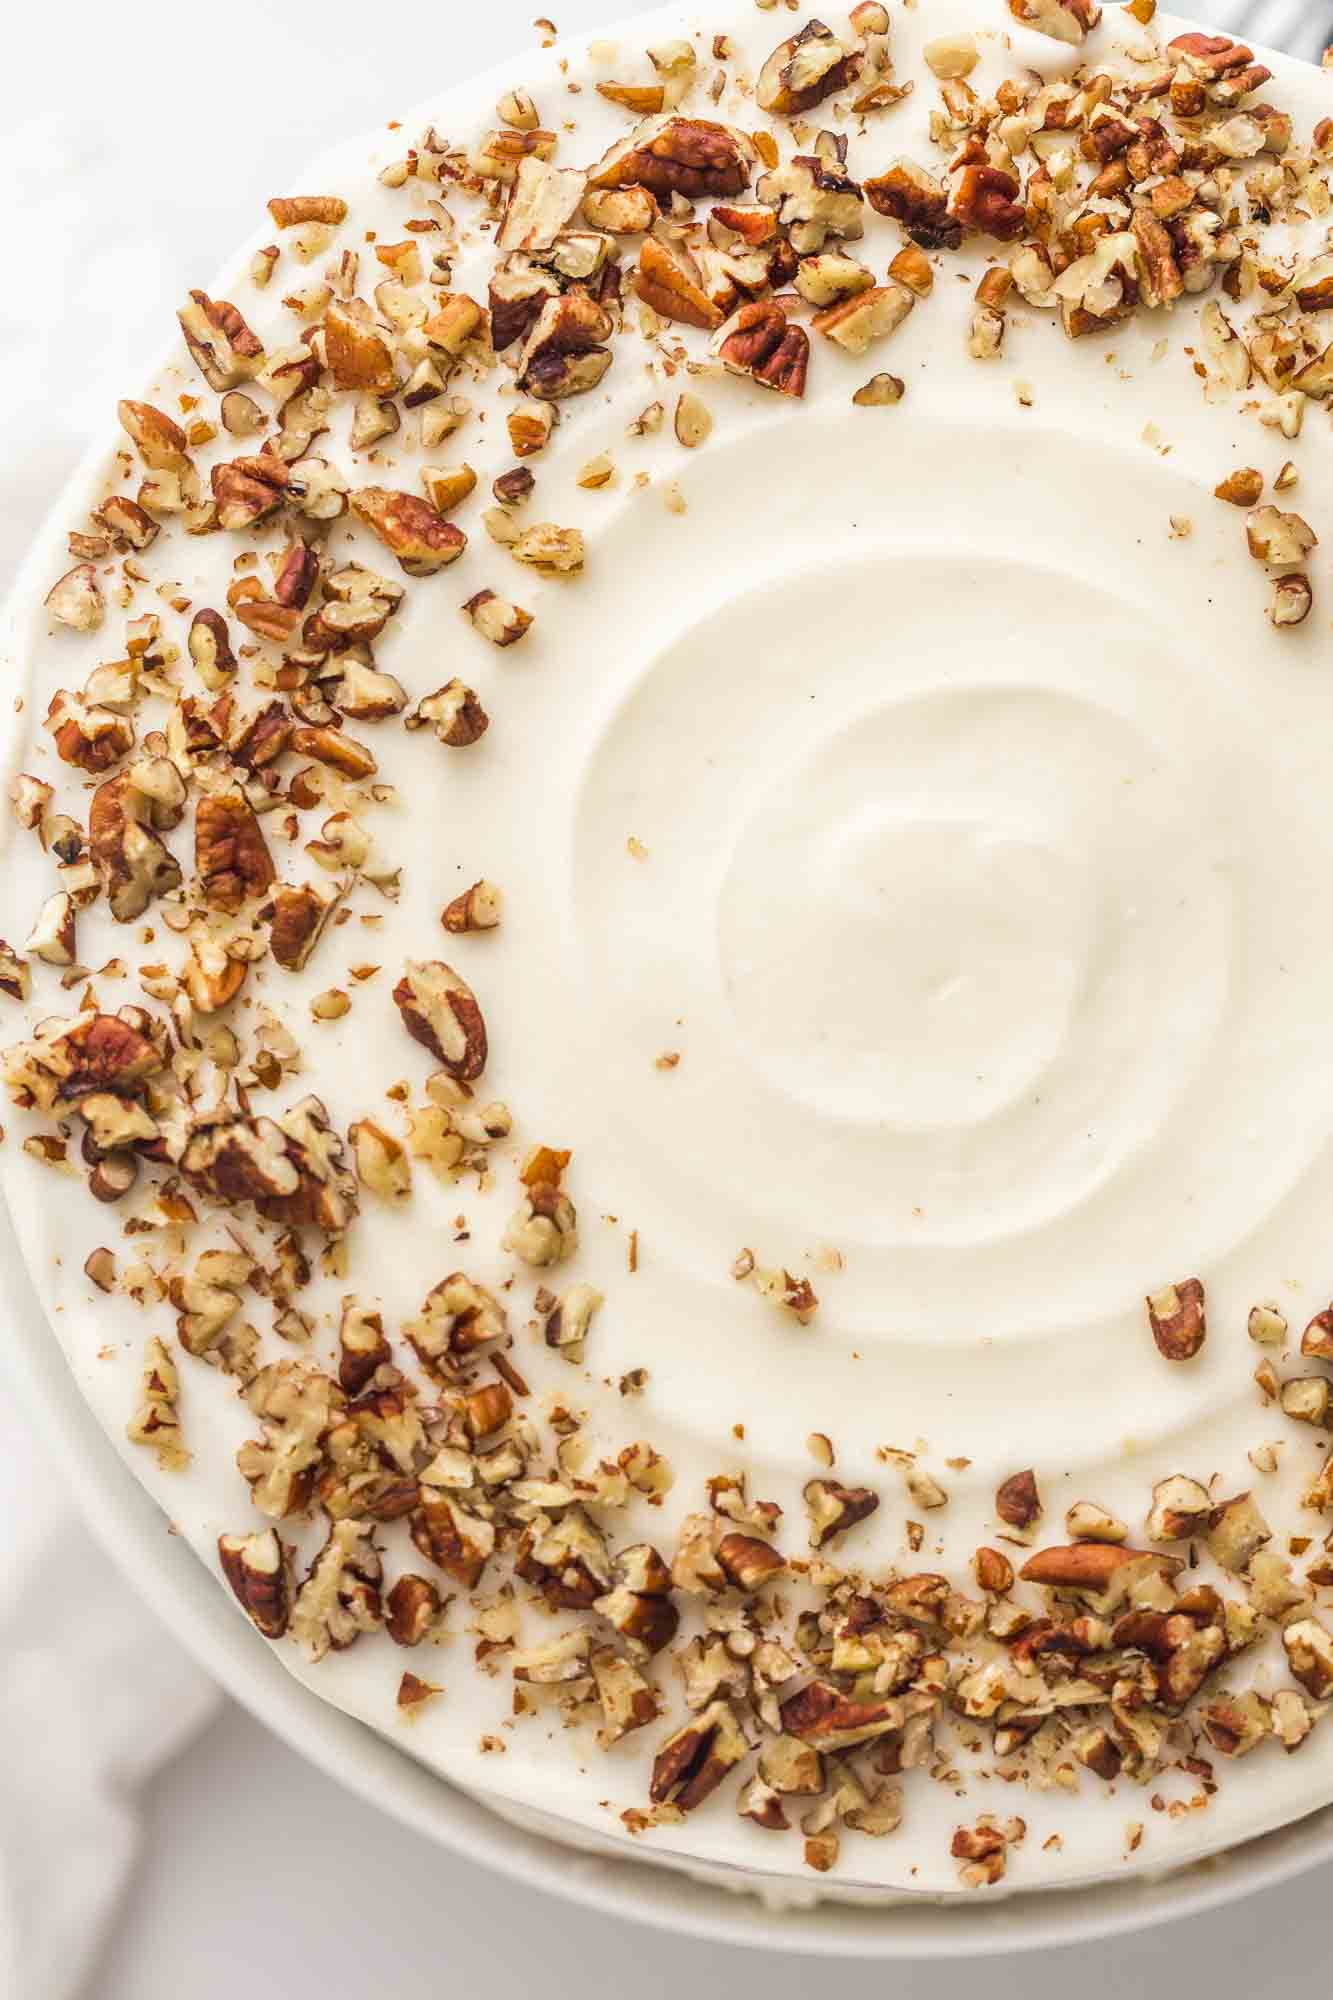 Overhead shot of the carrot cake with cream cheese frosting and crushed pecans.